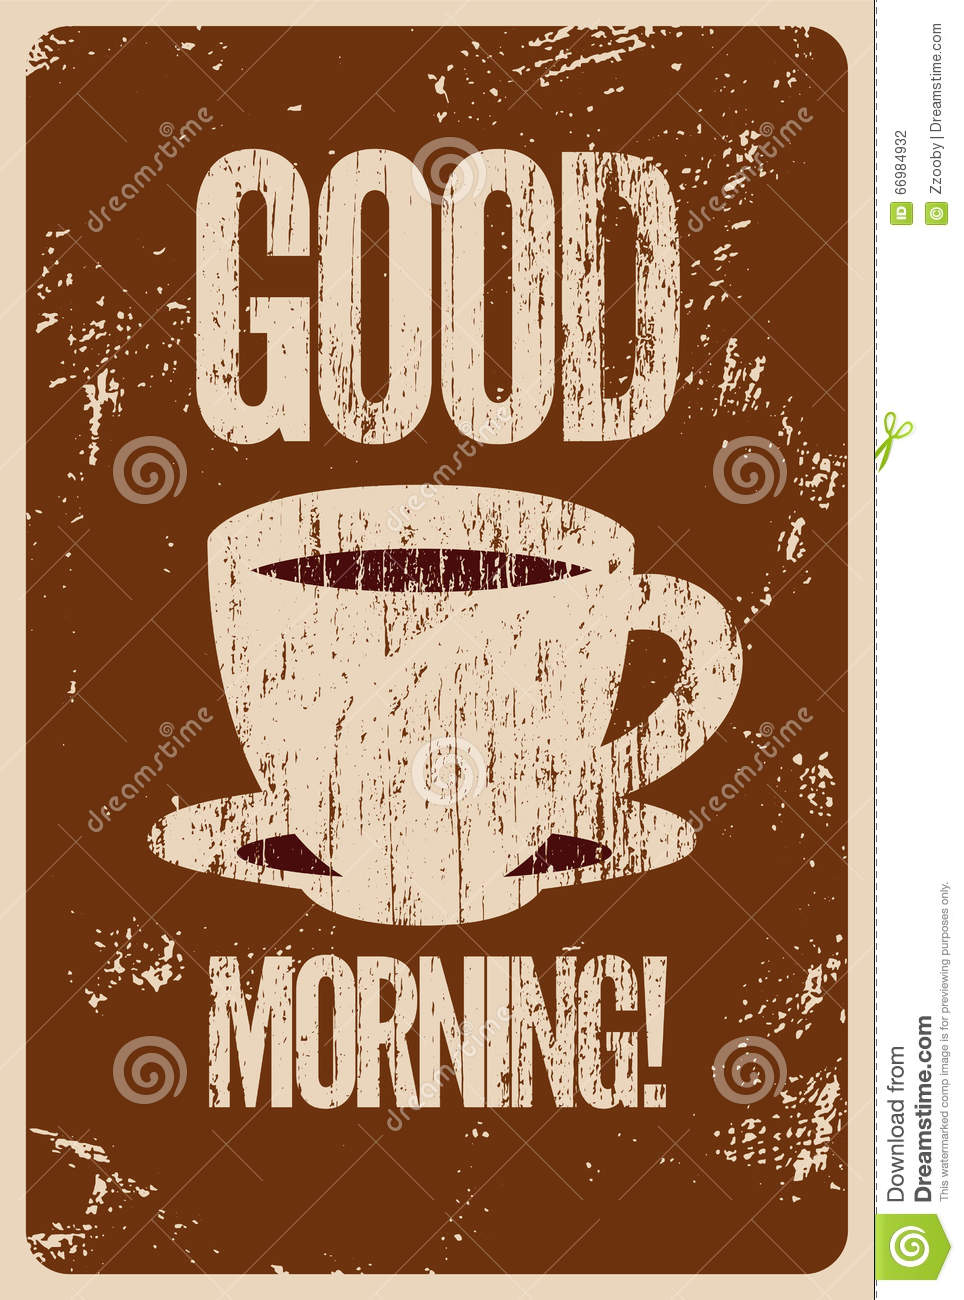 Good Morning Vintage Photos : Good morning coffee or tea typographic vintage style